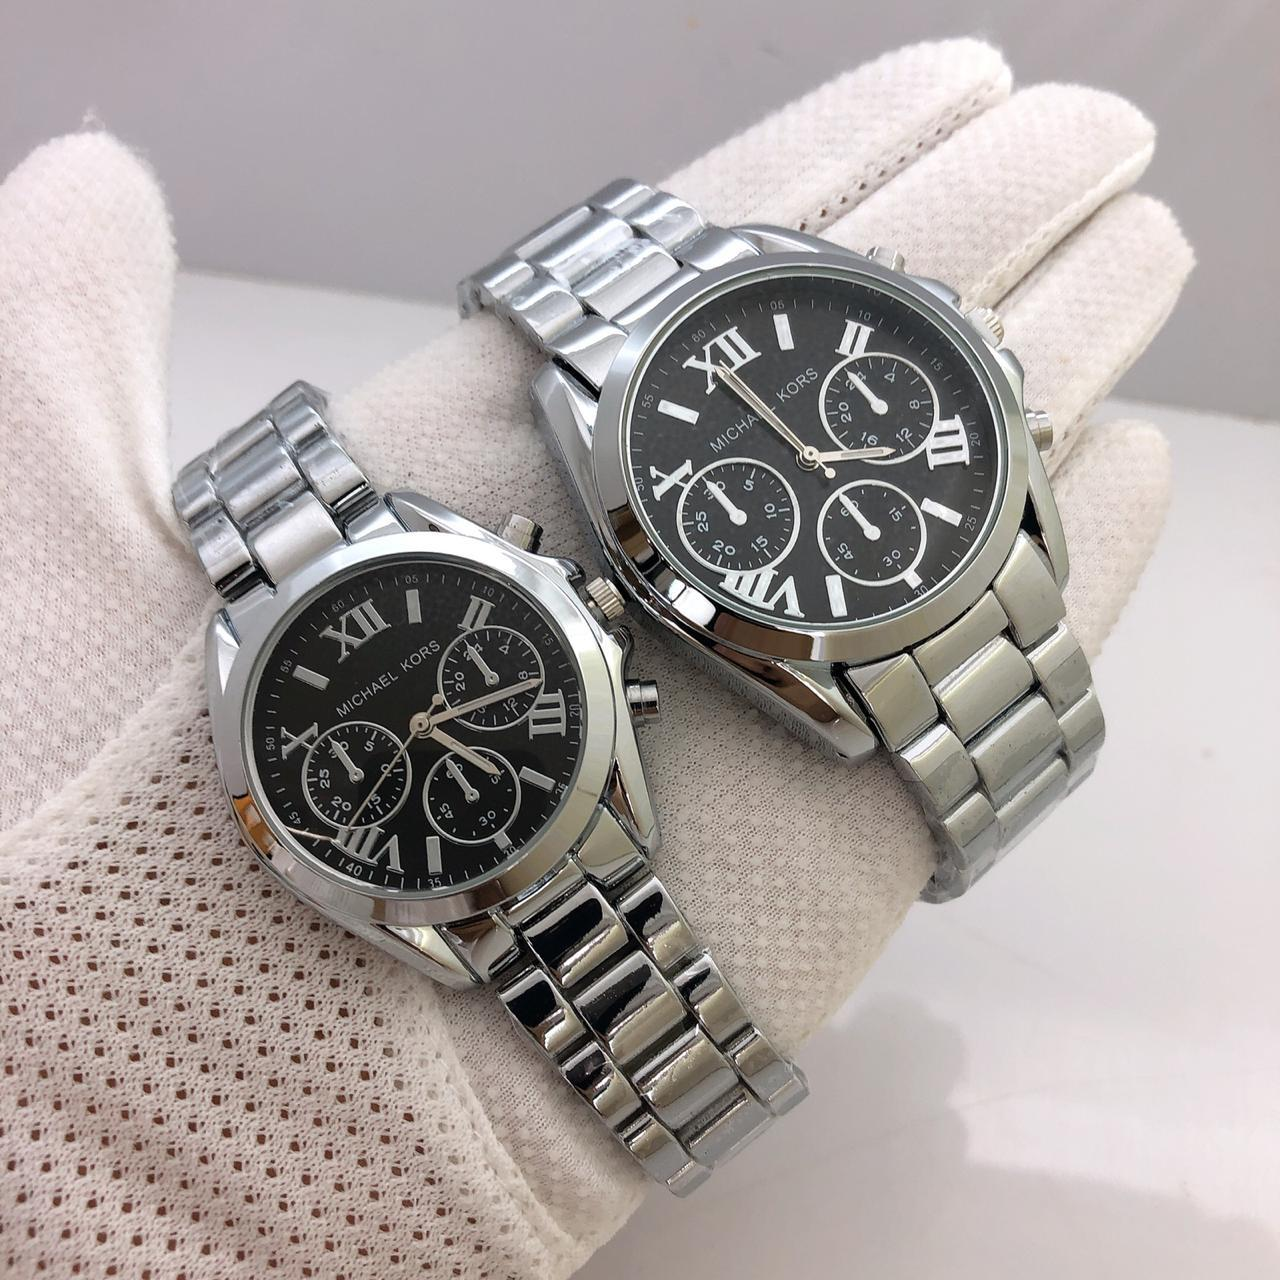 MK Couple Luxury Watches Set